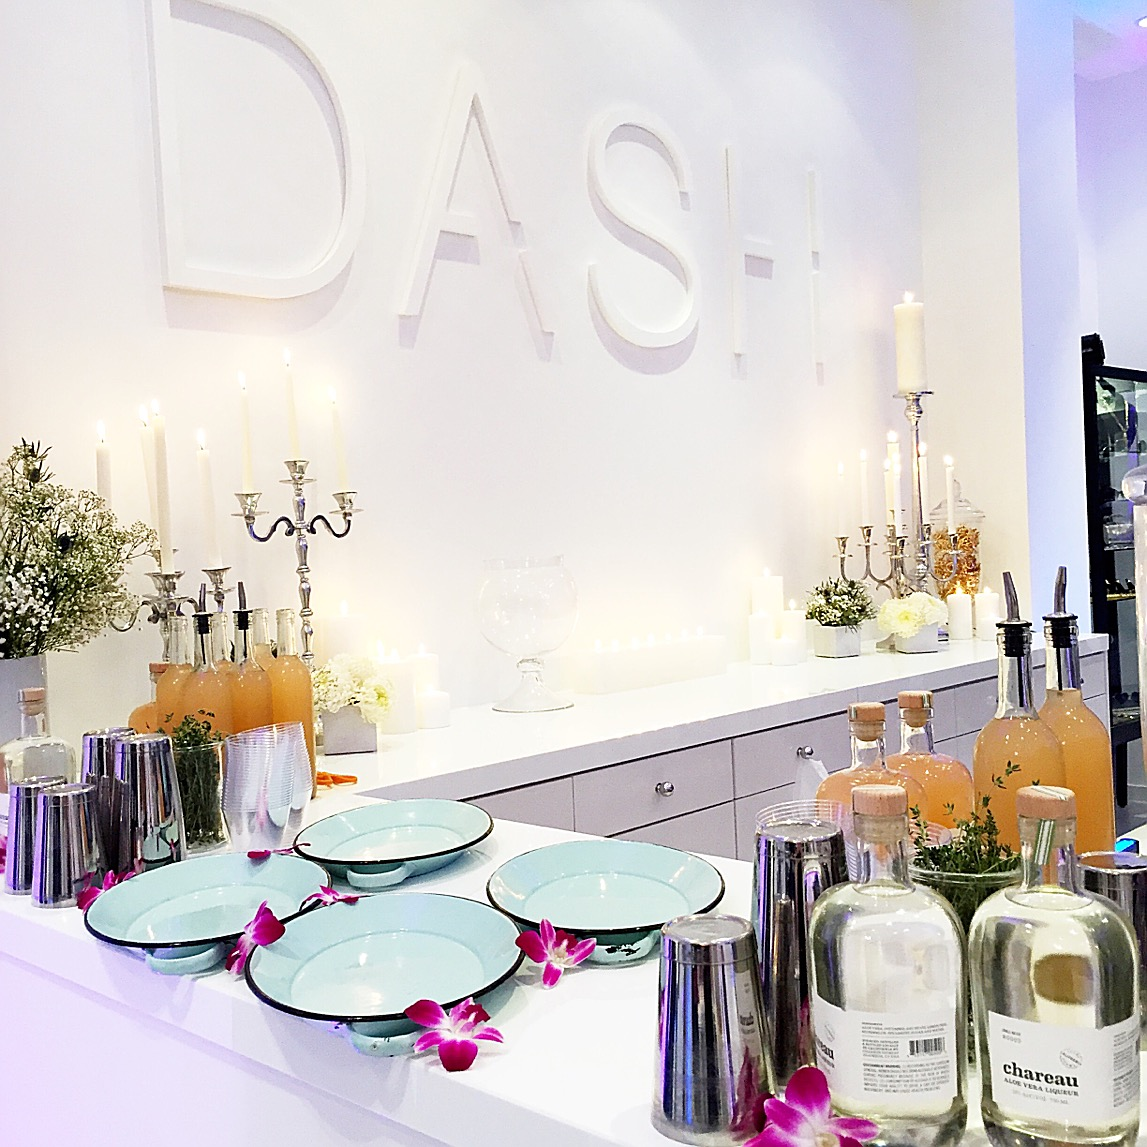 Cocktail bar at DASH boutique hosted JNB Style Party